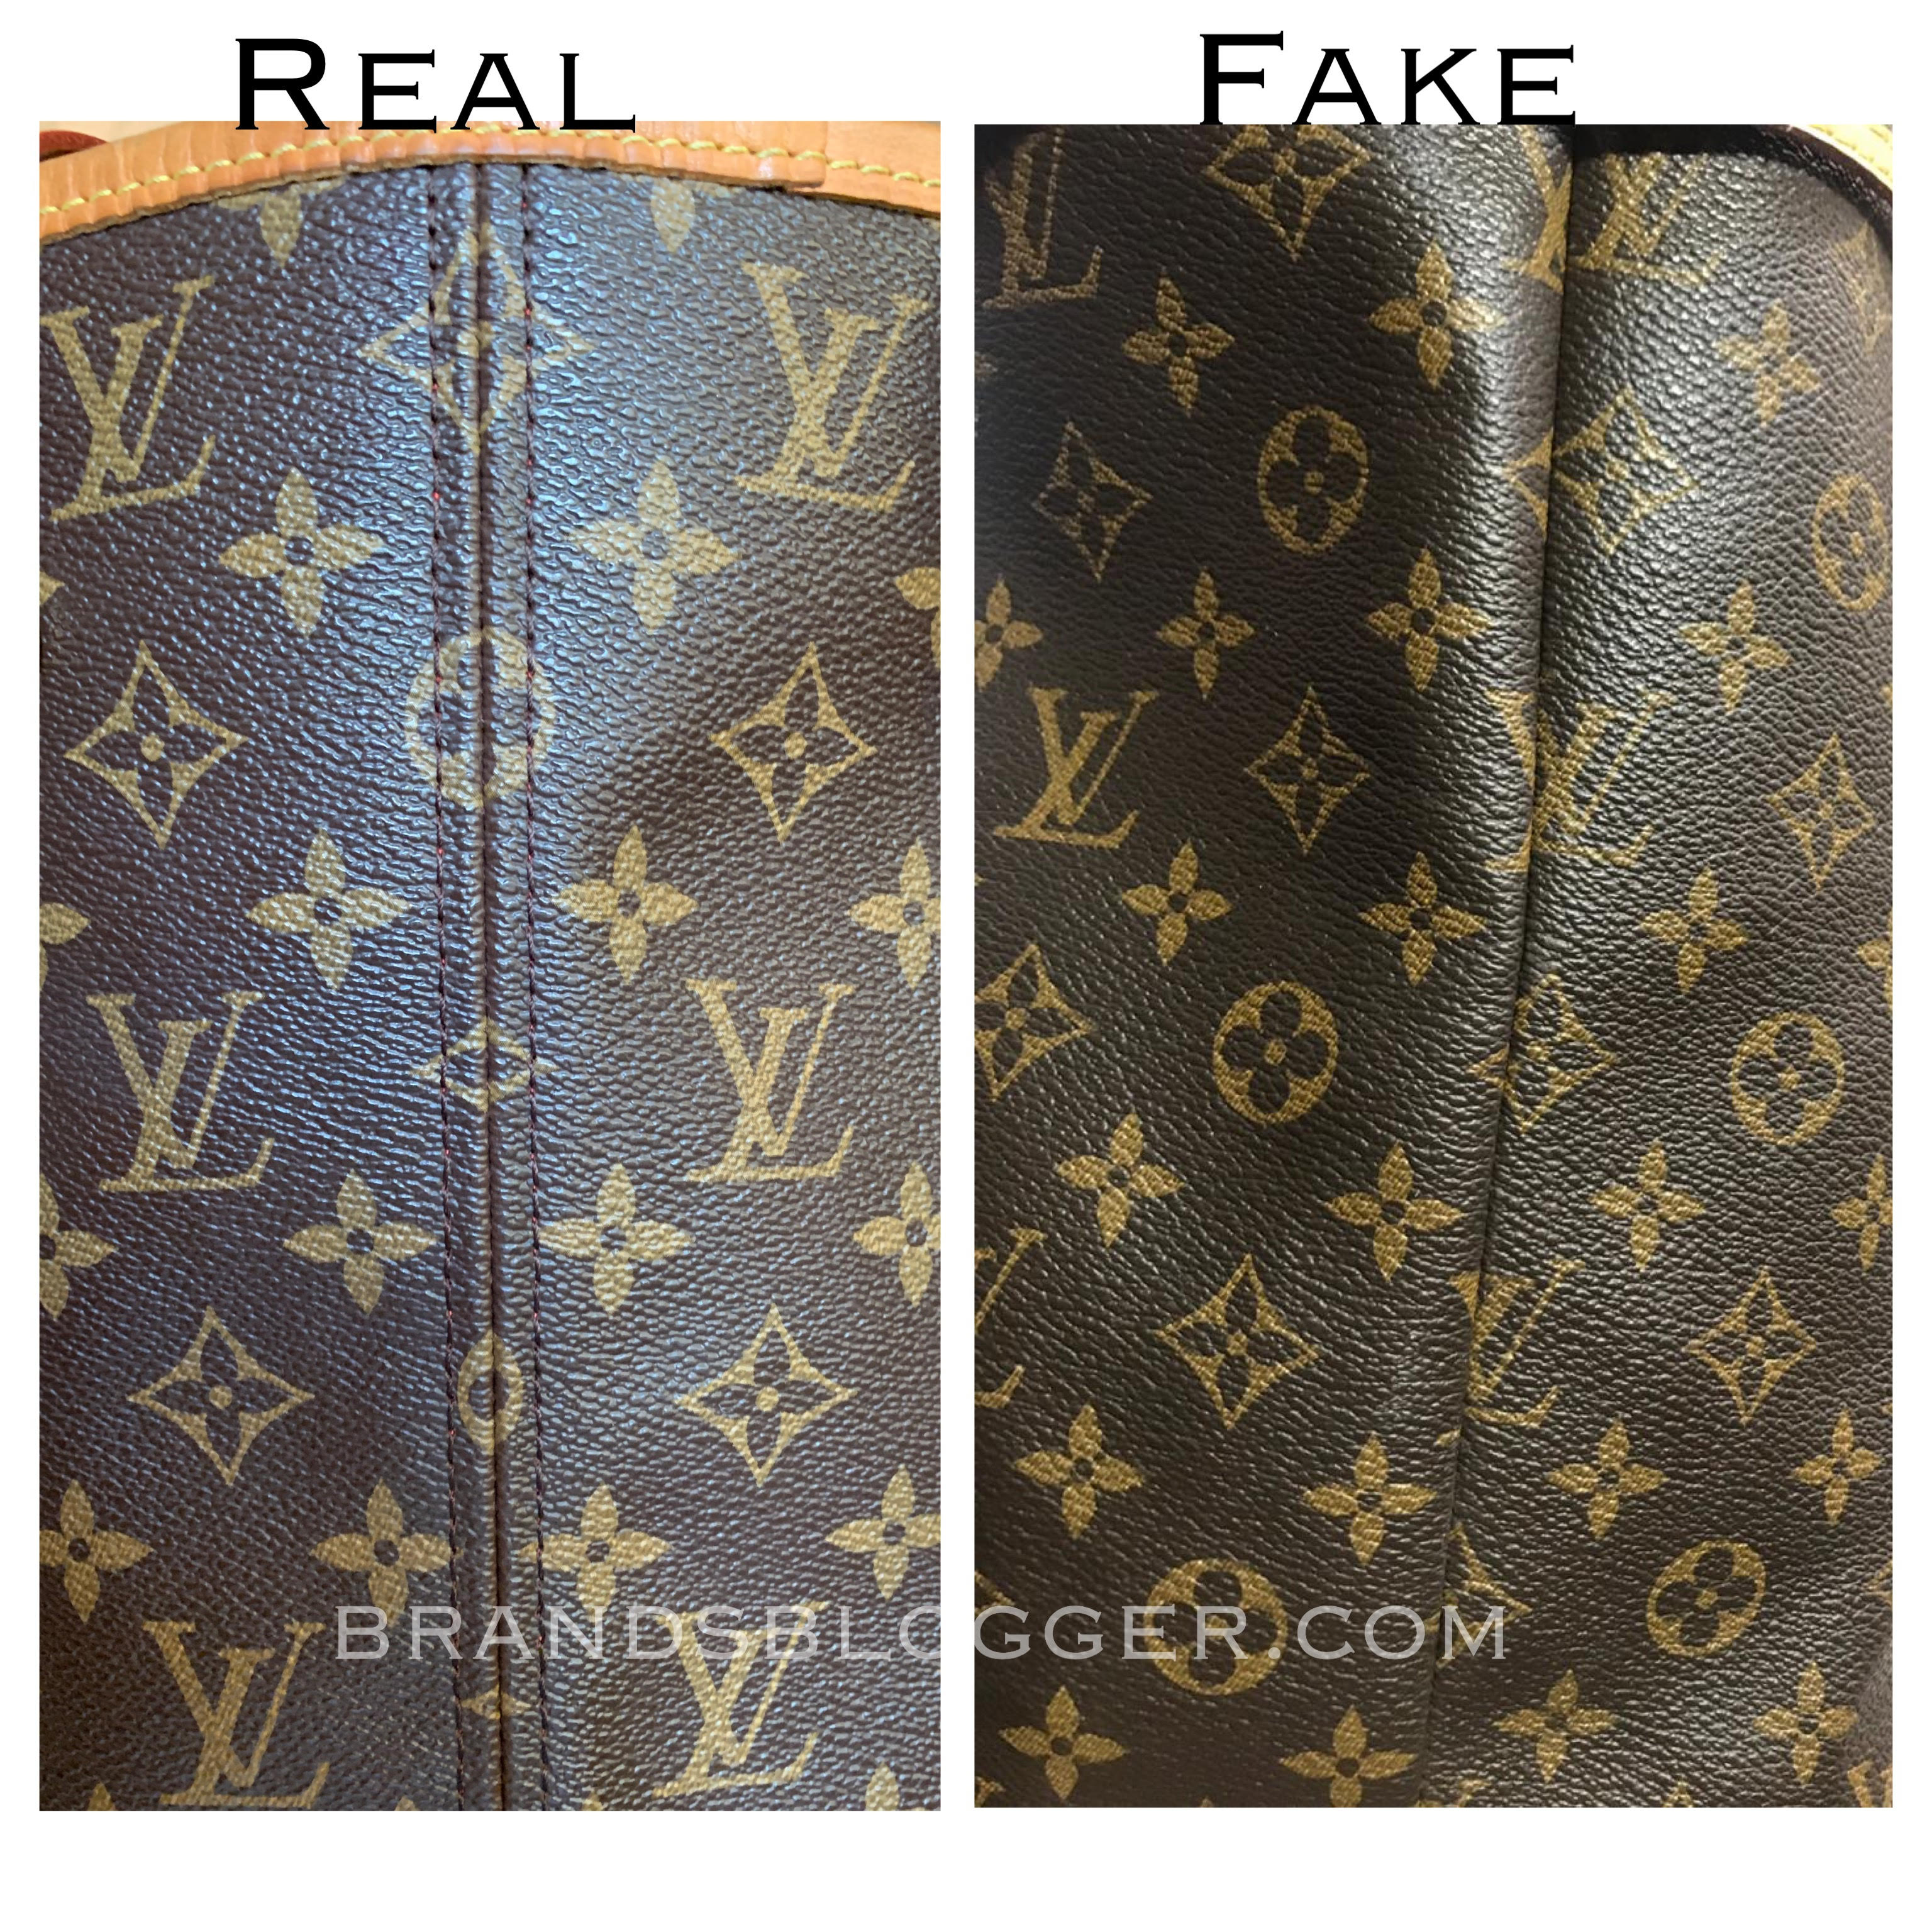 How To Spot A Fake And Authentic Louis Vuitton Bag Love >> How To Spot A Fake Louis Vuitton Neverfull Bag Brands Blogger